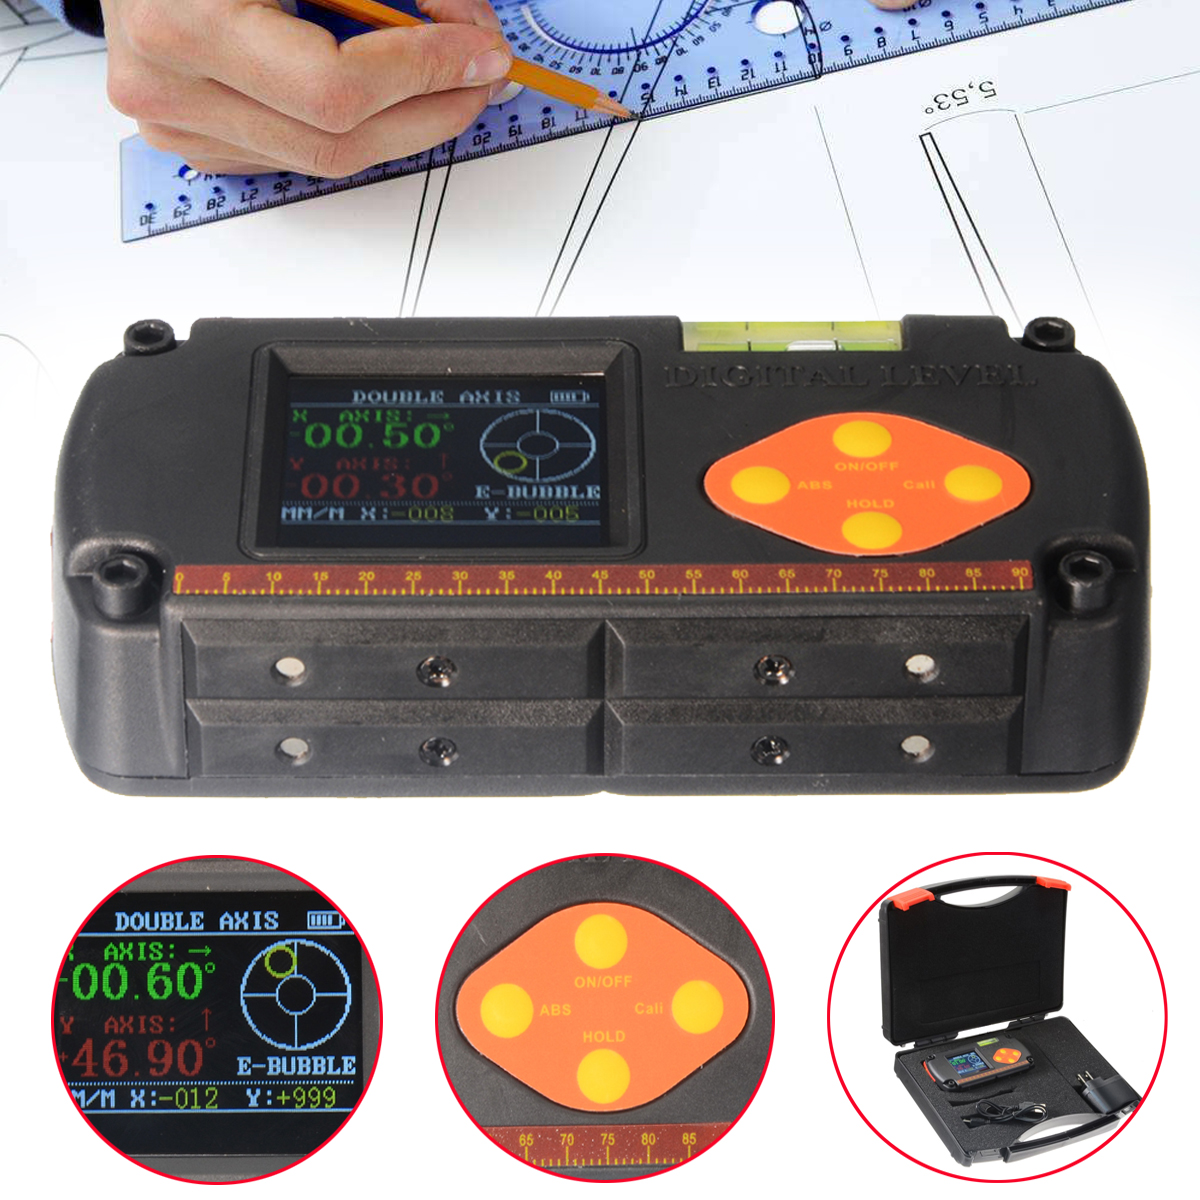 Digital Protractor Inclinometer Dual Axis Level Measure Box Angle Finder Gauge Ruler Elevation Meter DAX Digital Level